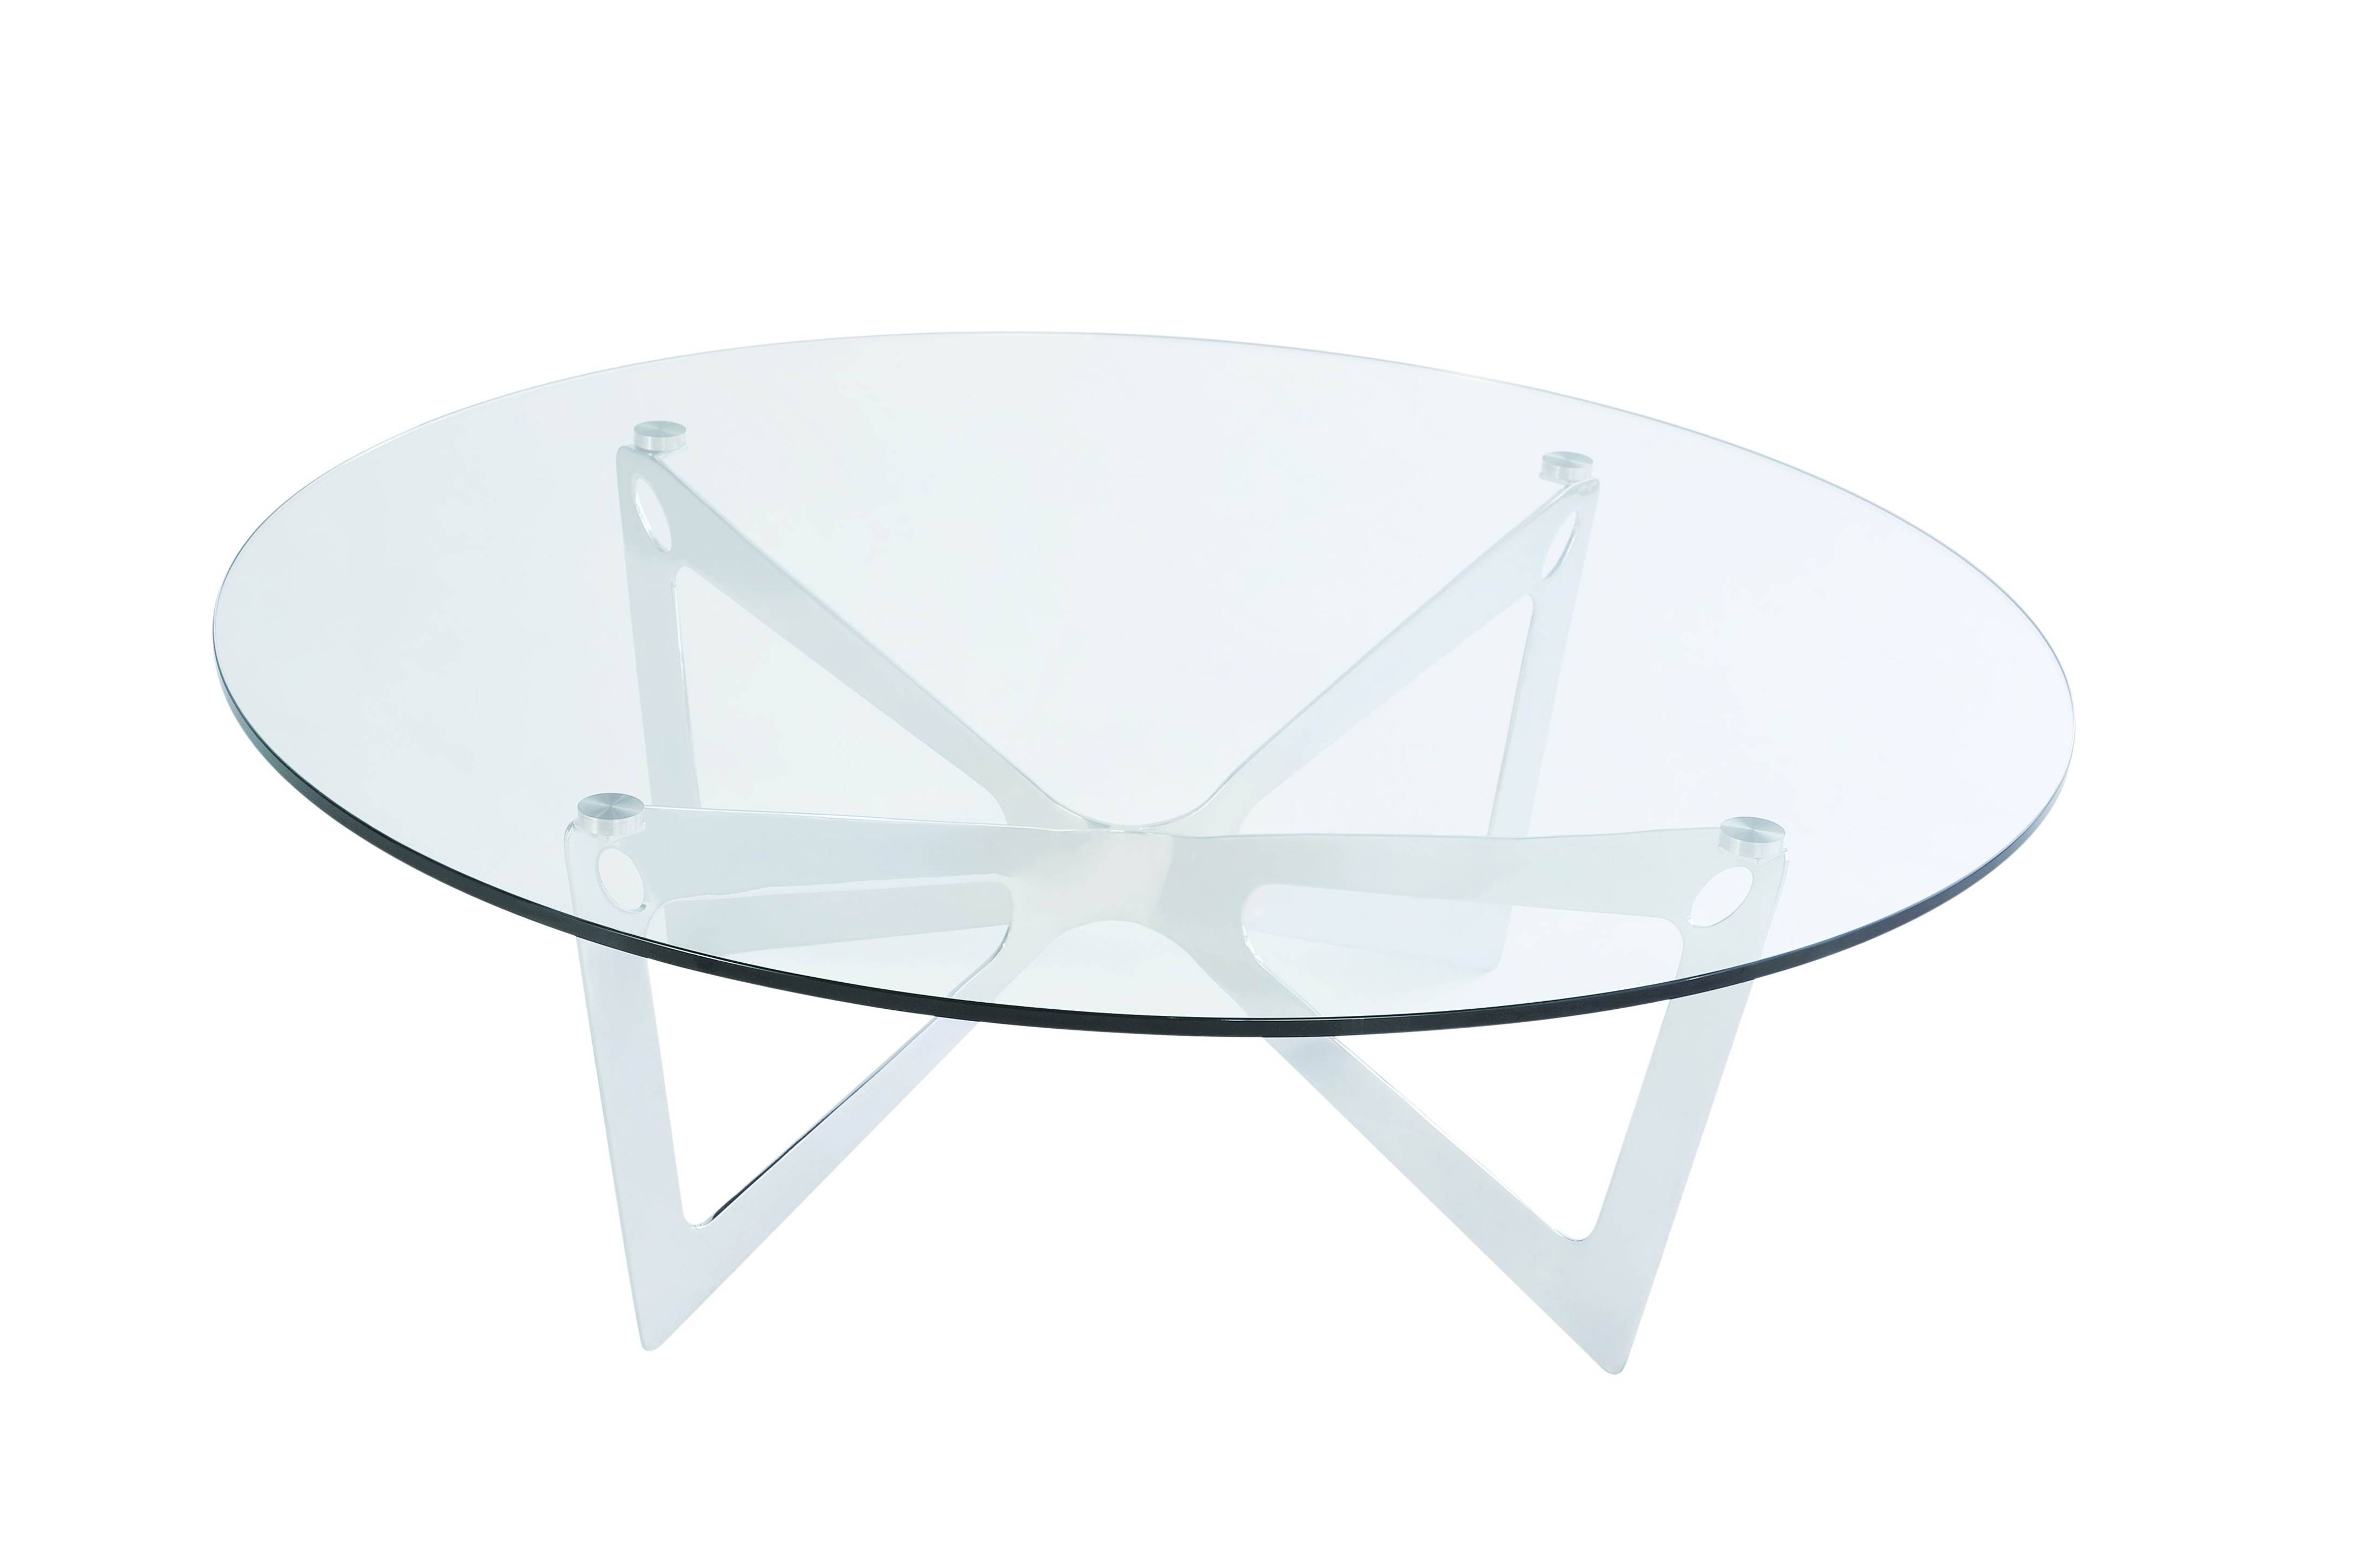 Table : Contemporary Oval Coffee Tables Glass Made Of Metal And For Coffee Tables Glass And Metal (View 29 of 30)